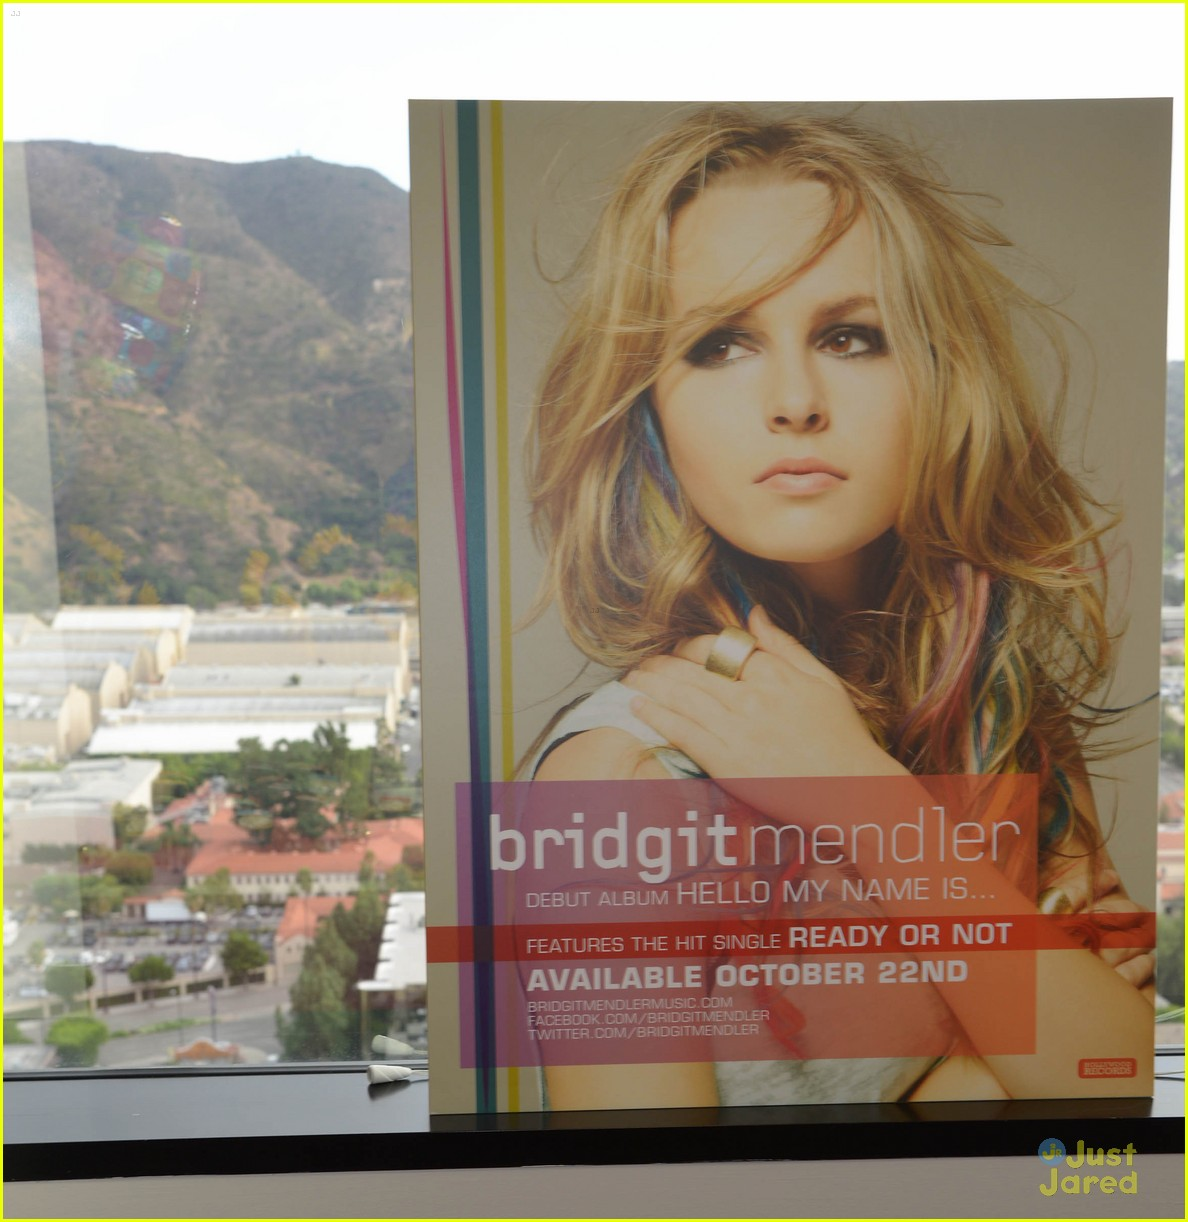 bridgit mendler album stream 08